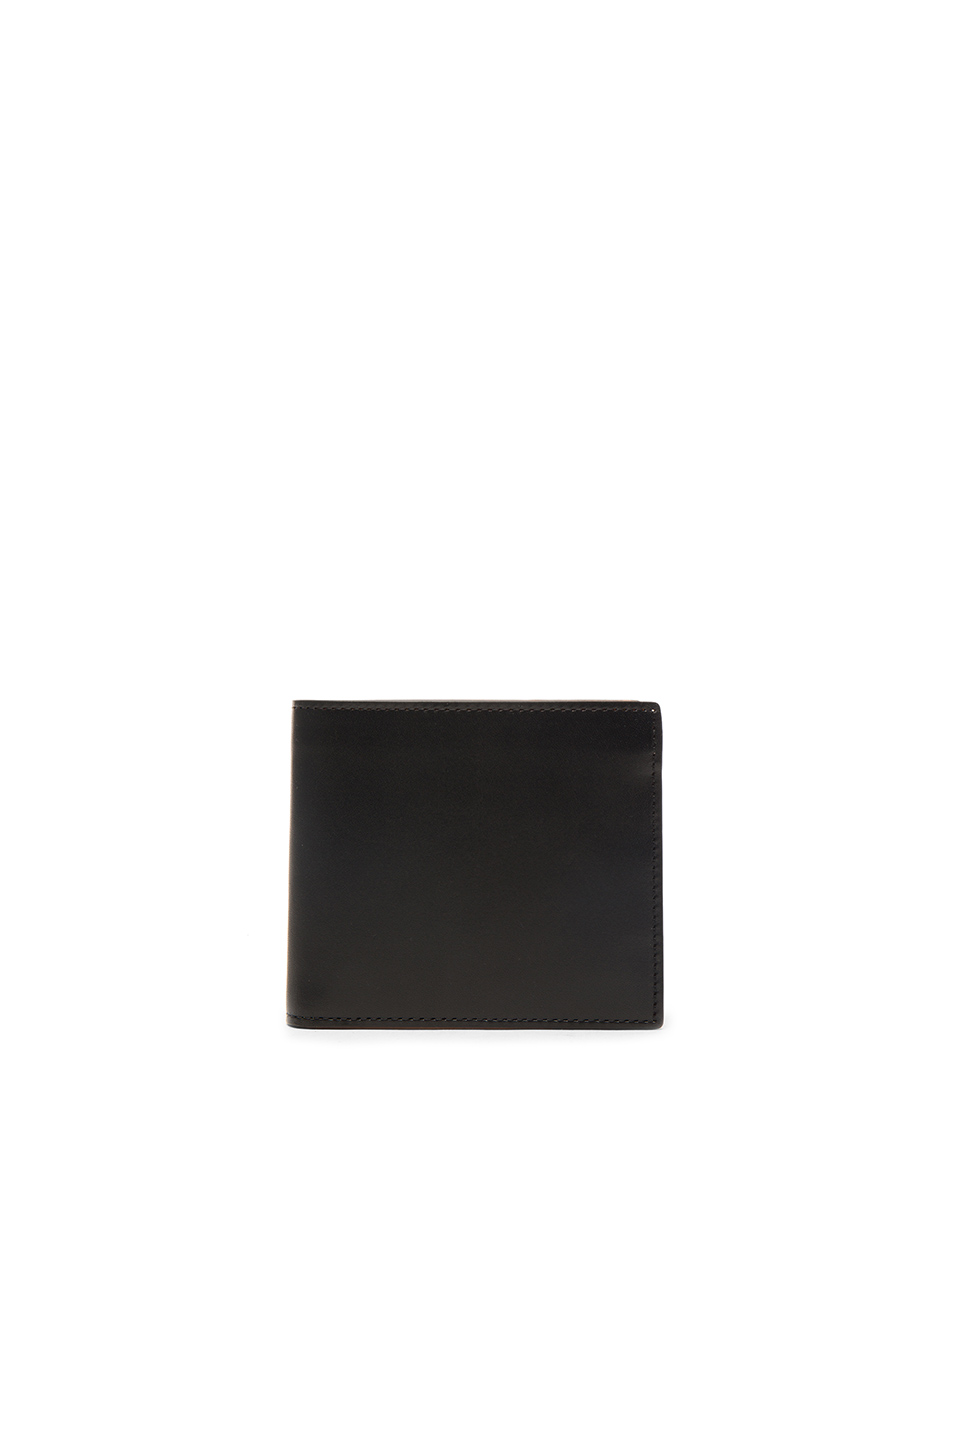 Maison Margiela Calf Leather Billfold Wallet in Black